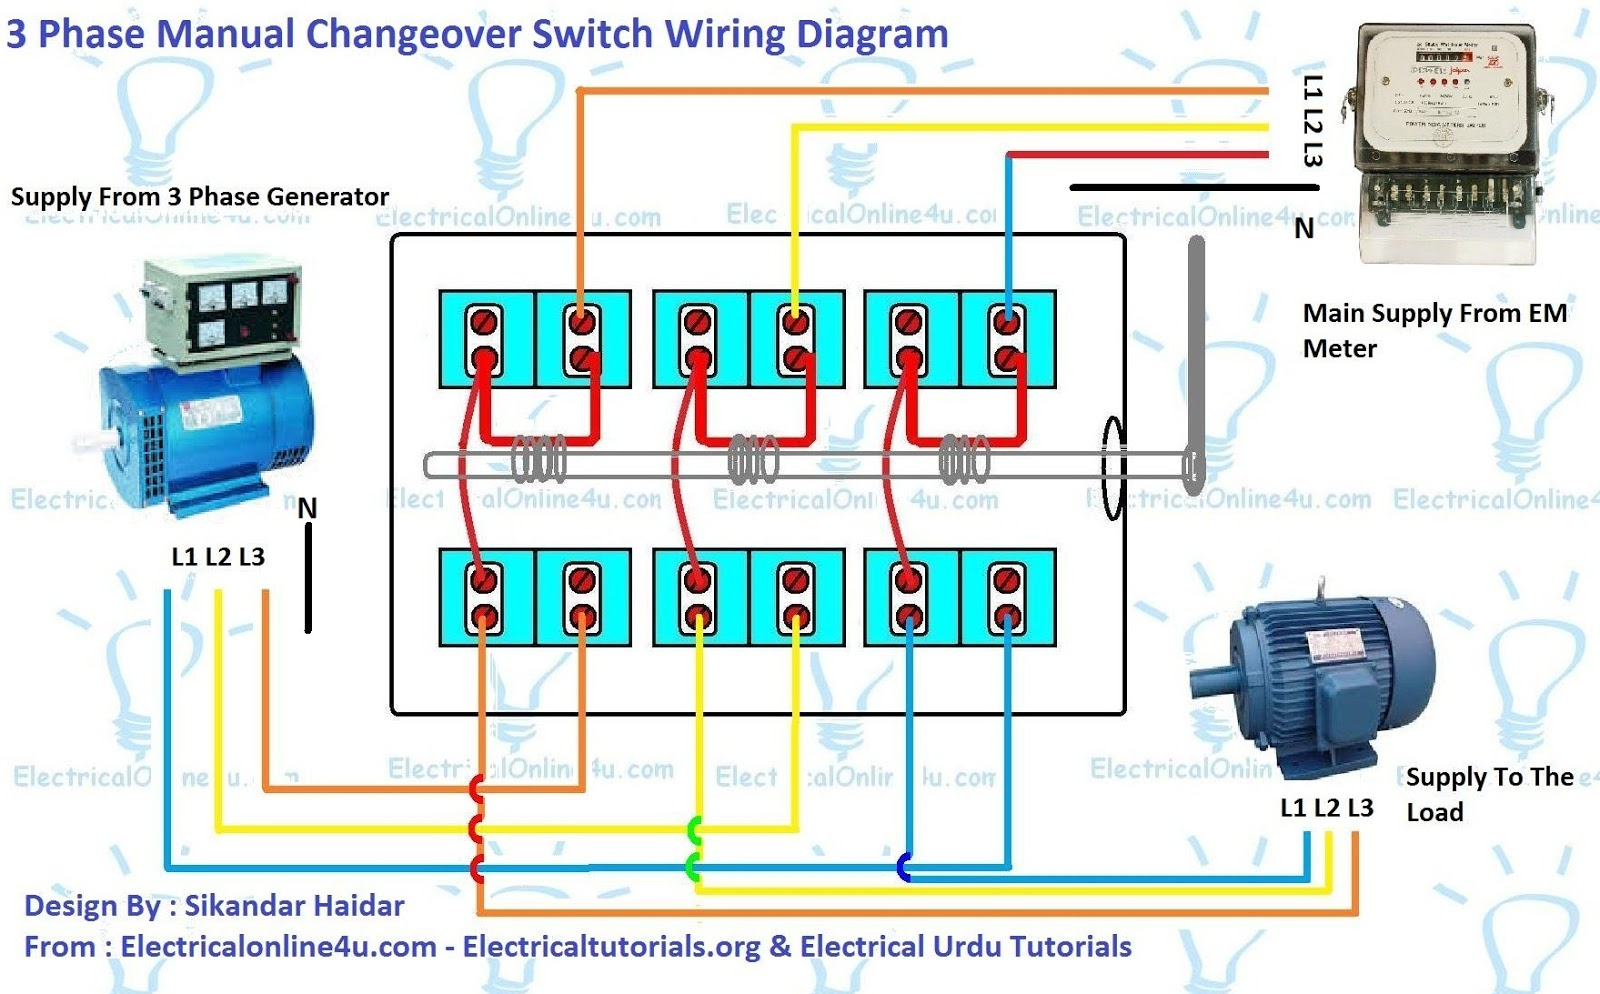 3 Phase Power Wiring Diagram from 3.bp.blogspot.com